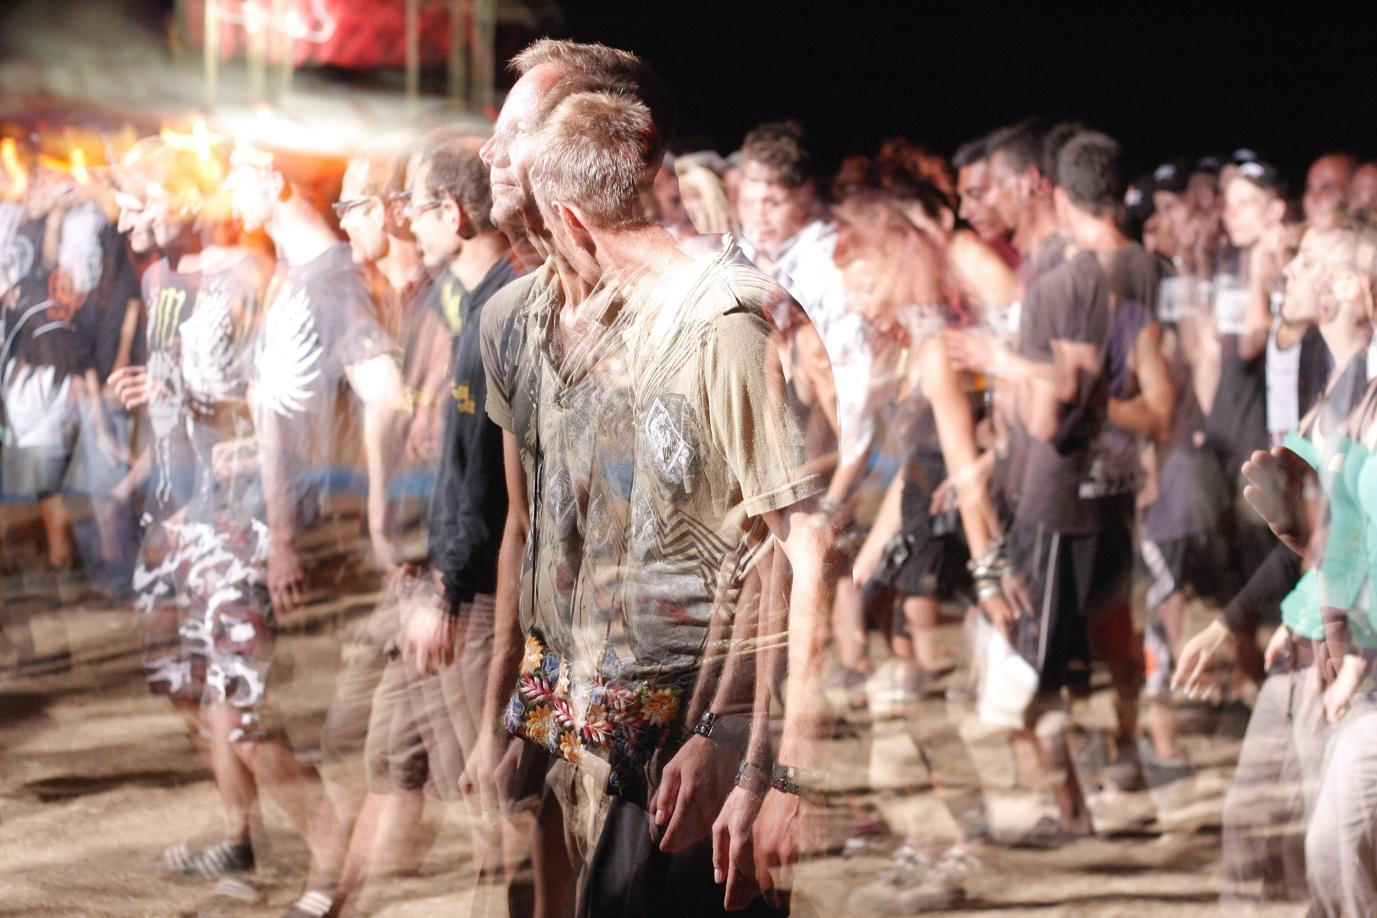 A picture containing person, sport, dancer, crowd  Description automatically generated